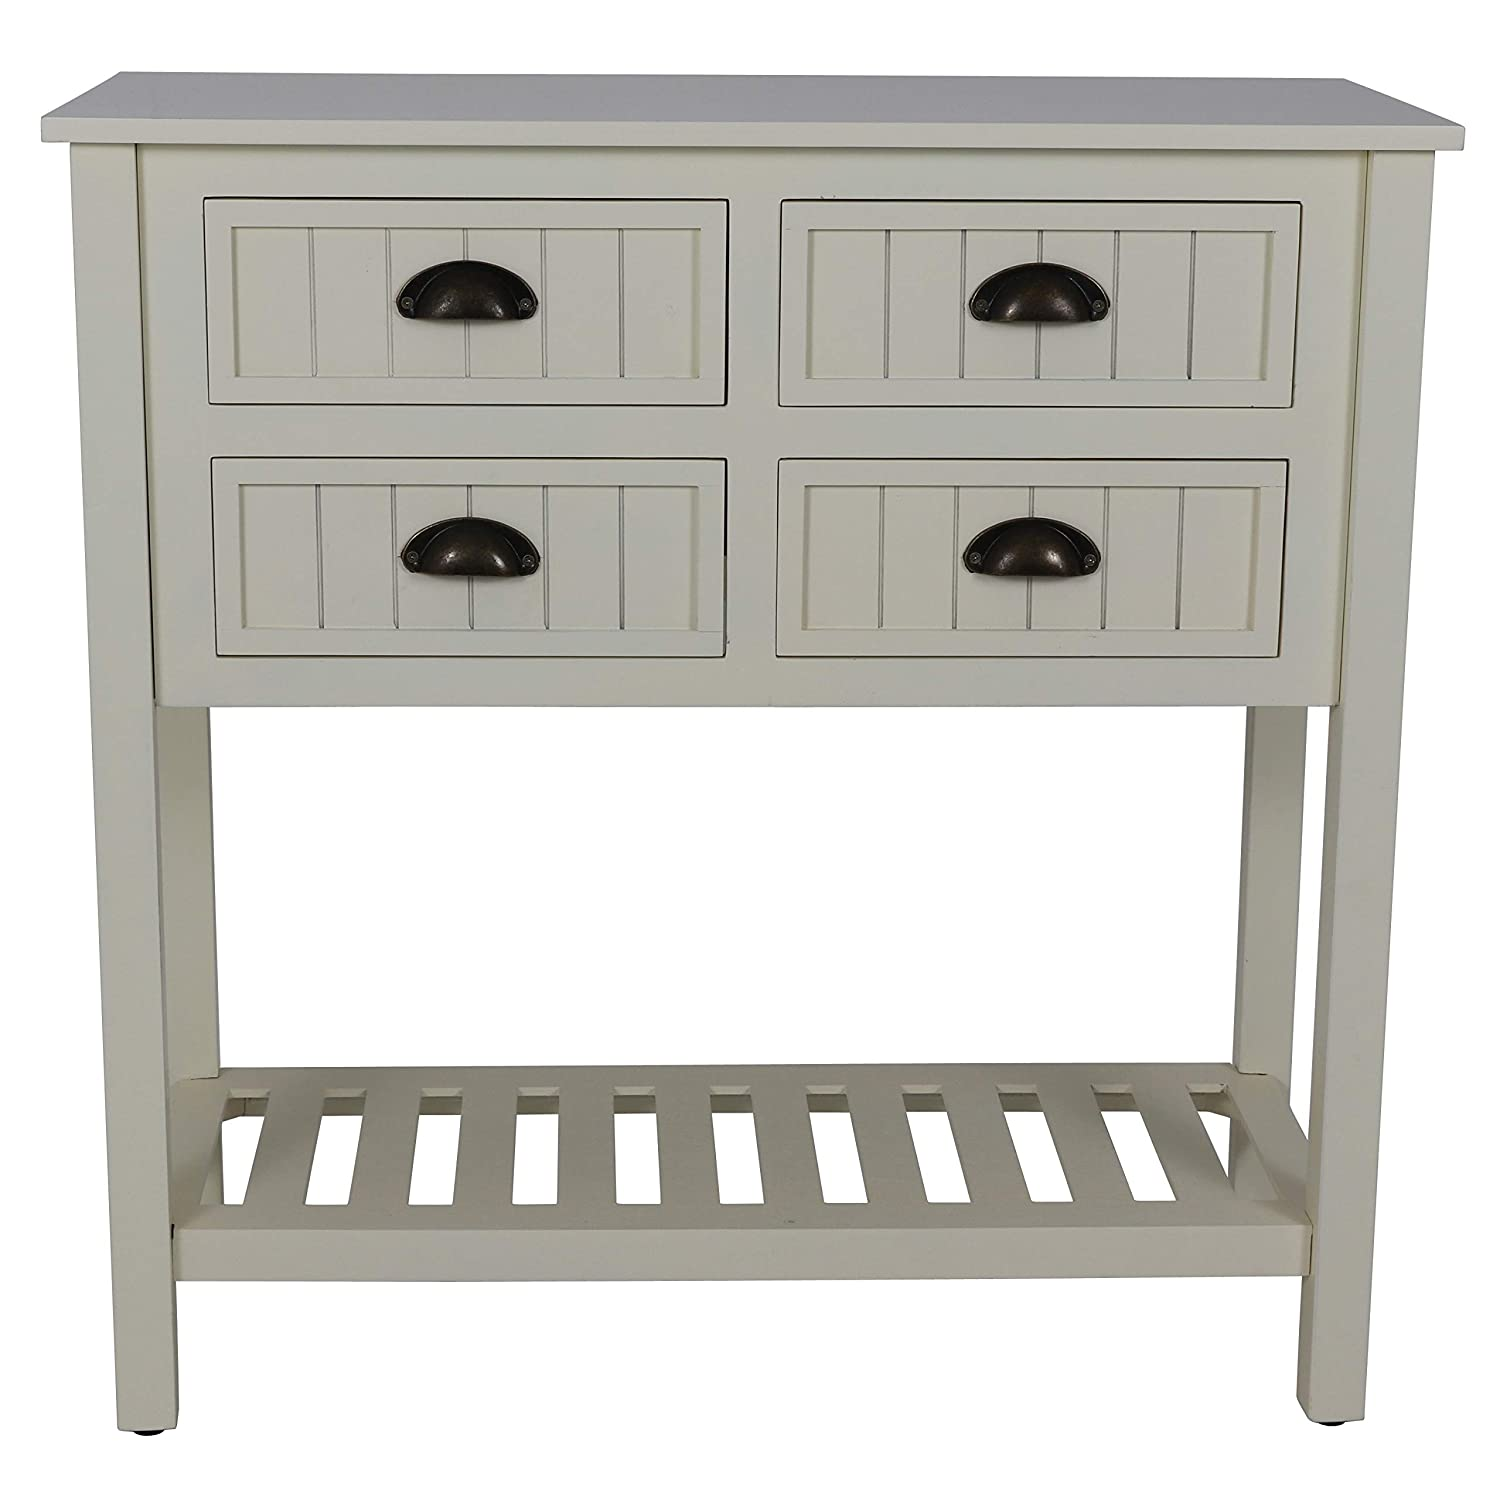 Decor Therapy FR8682 Bailey Bead Board 4-Drawer Console Table, 14x32x32, Antique White